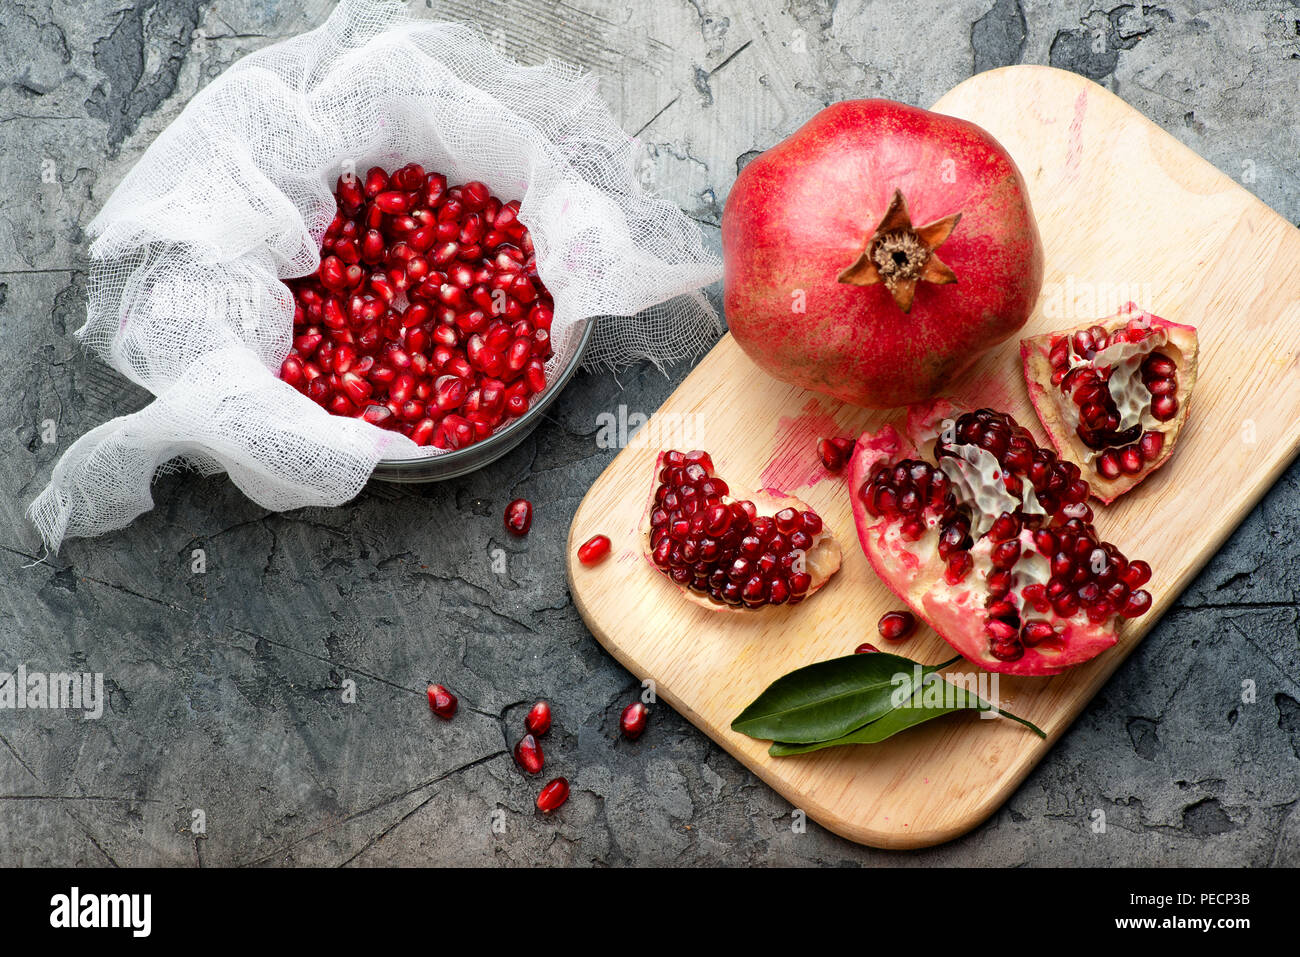 Pomegranate fruits with grains and leaves on the table. Top view. Make juice. - Stock Image